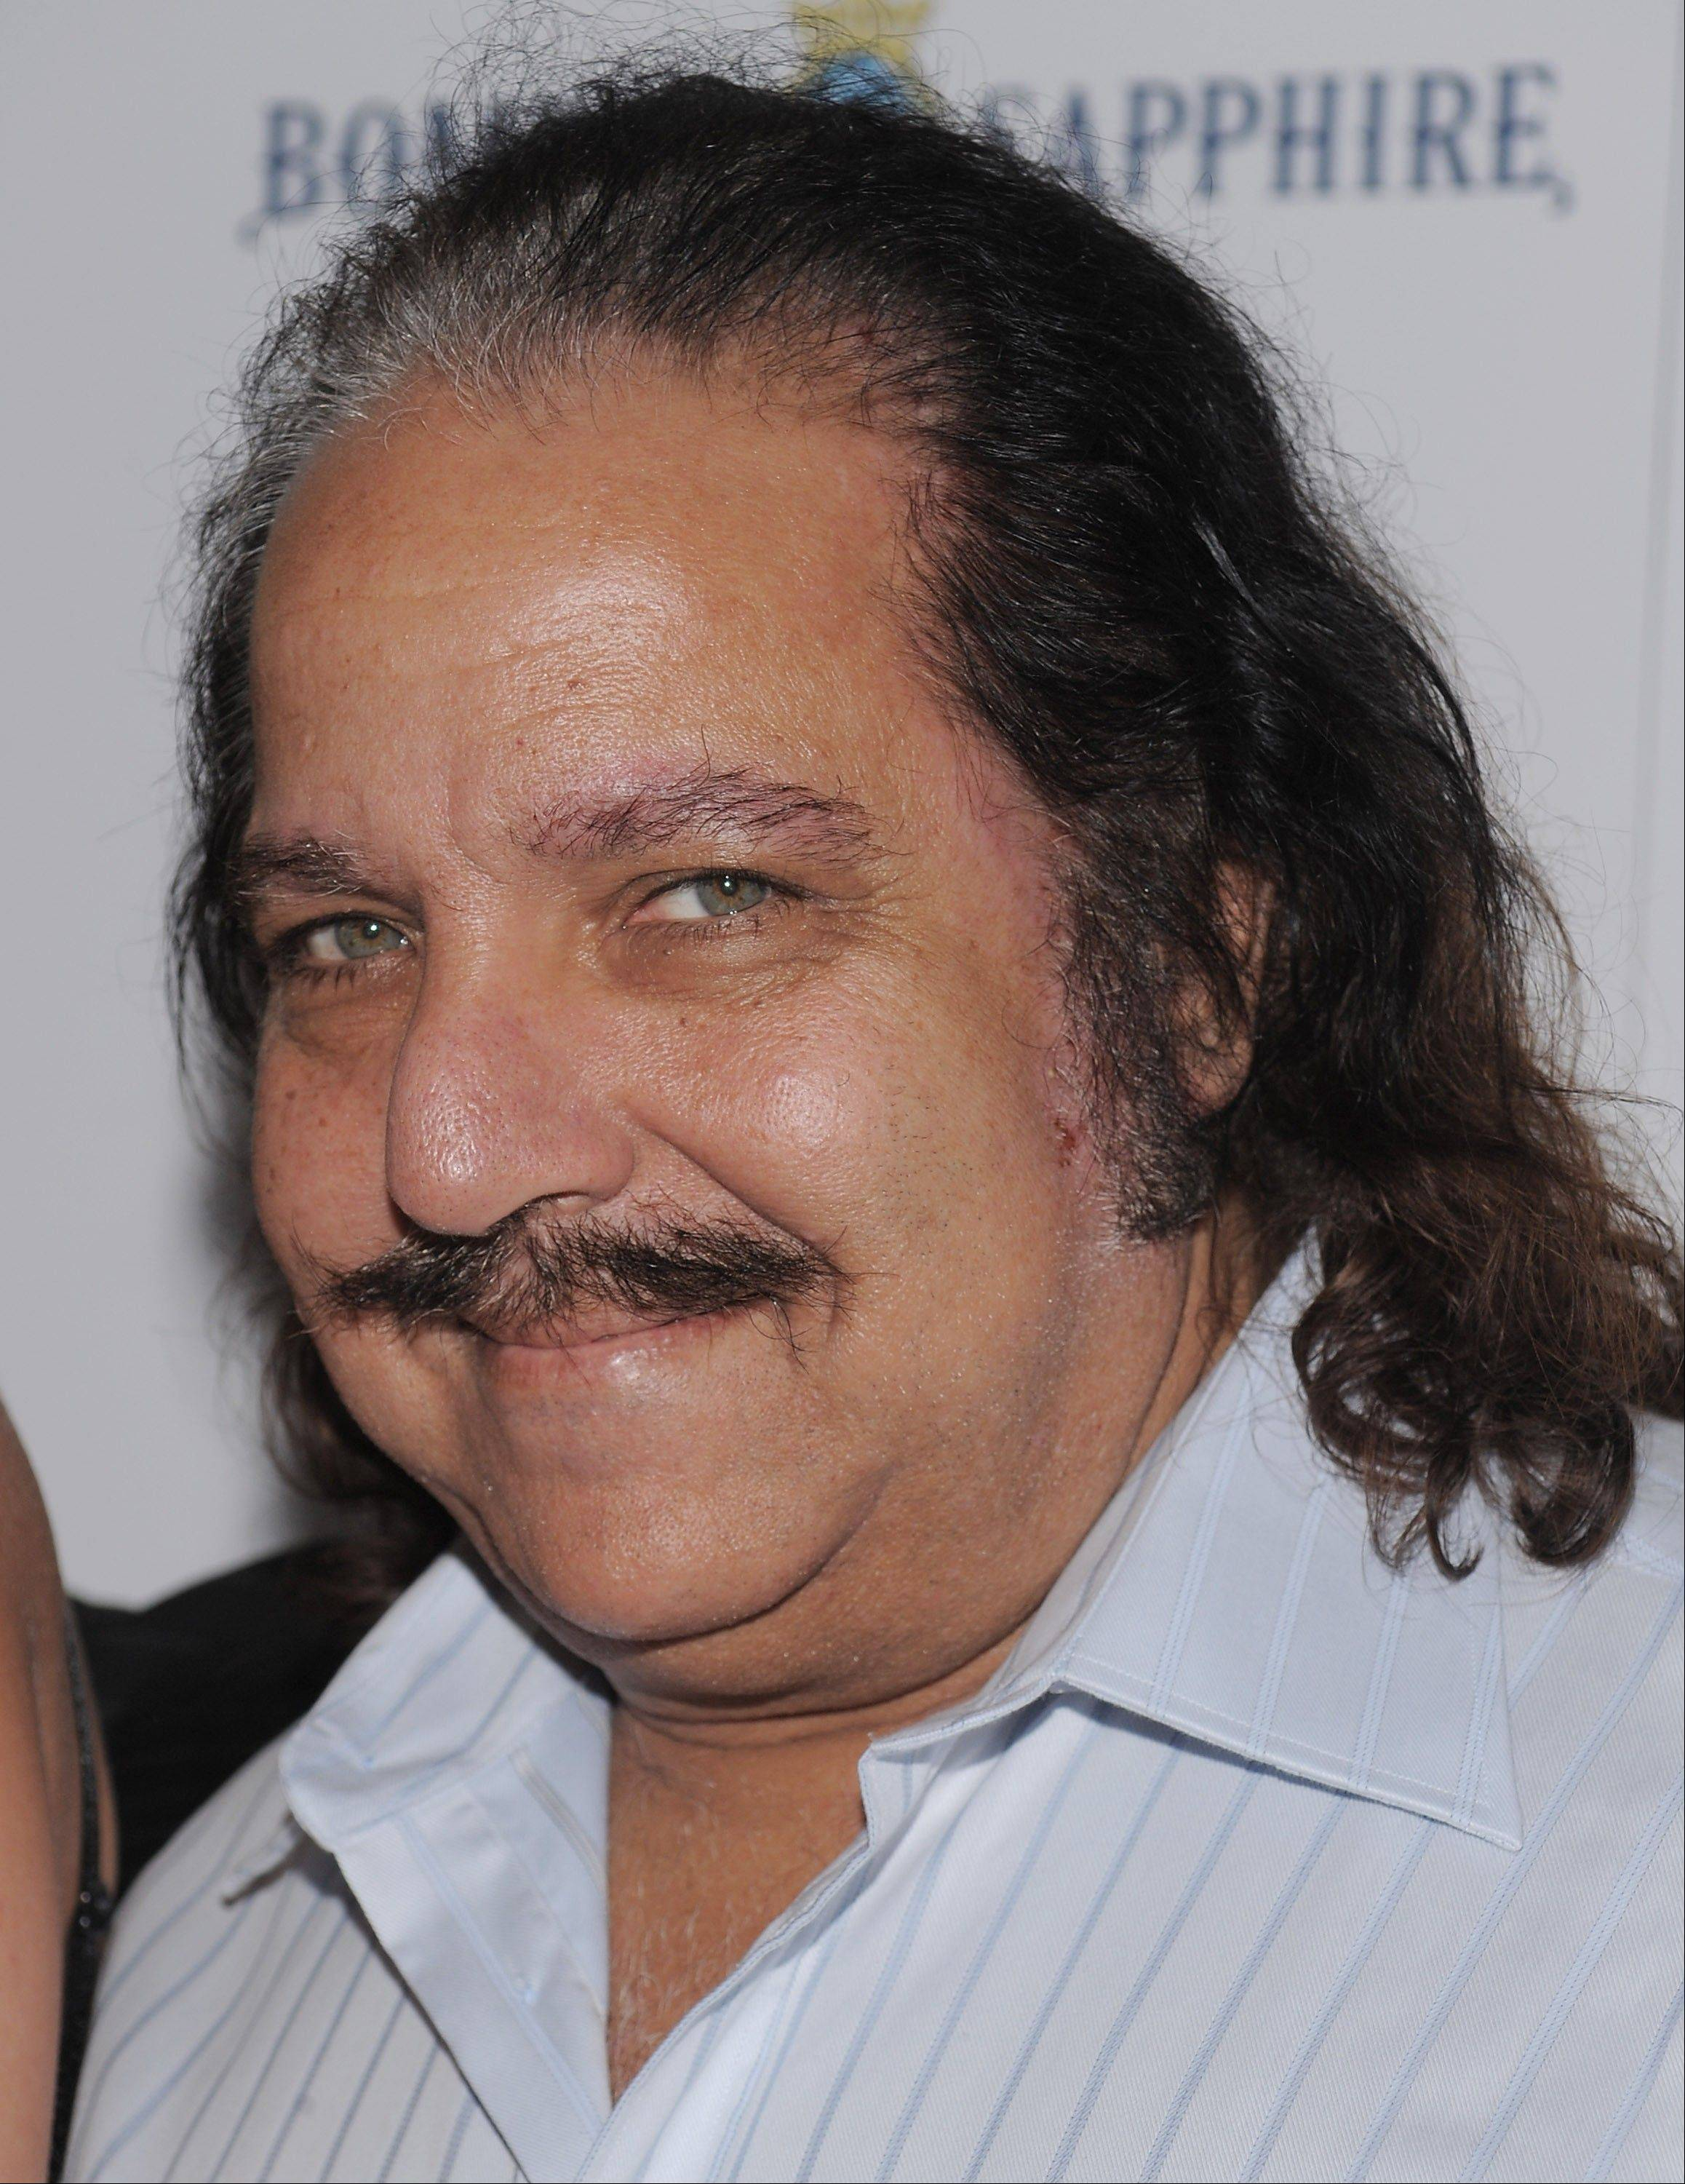 Adult film star Ron Jeremy is recovering from surgery at a Los Angeles hospital after an aneurysm near his heart sent him to intensive care.